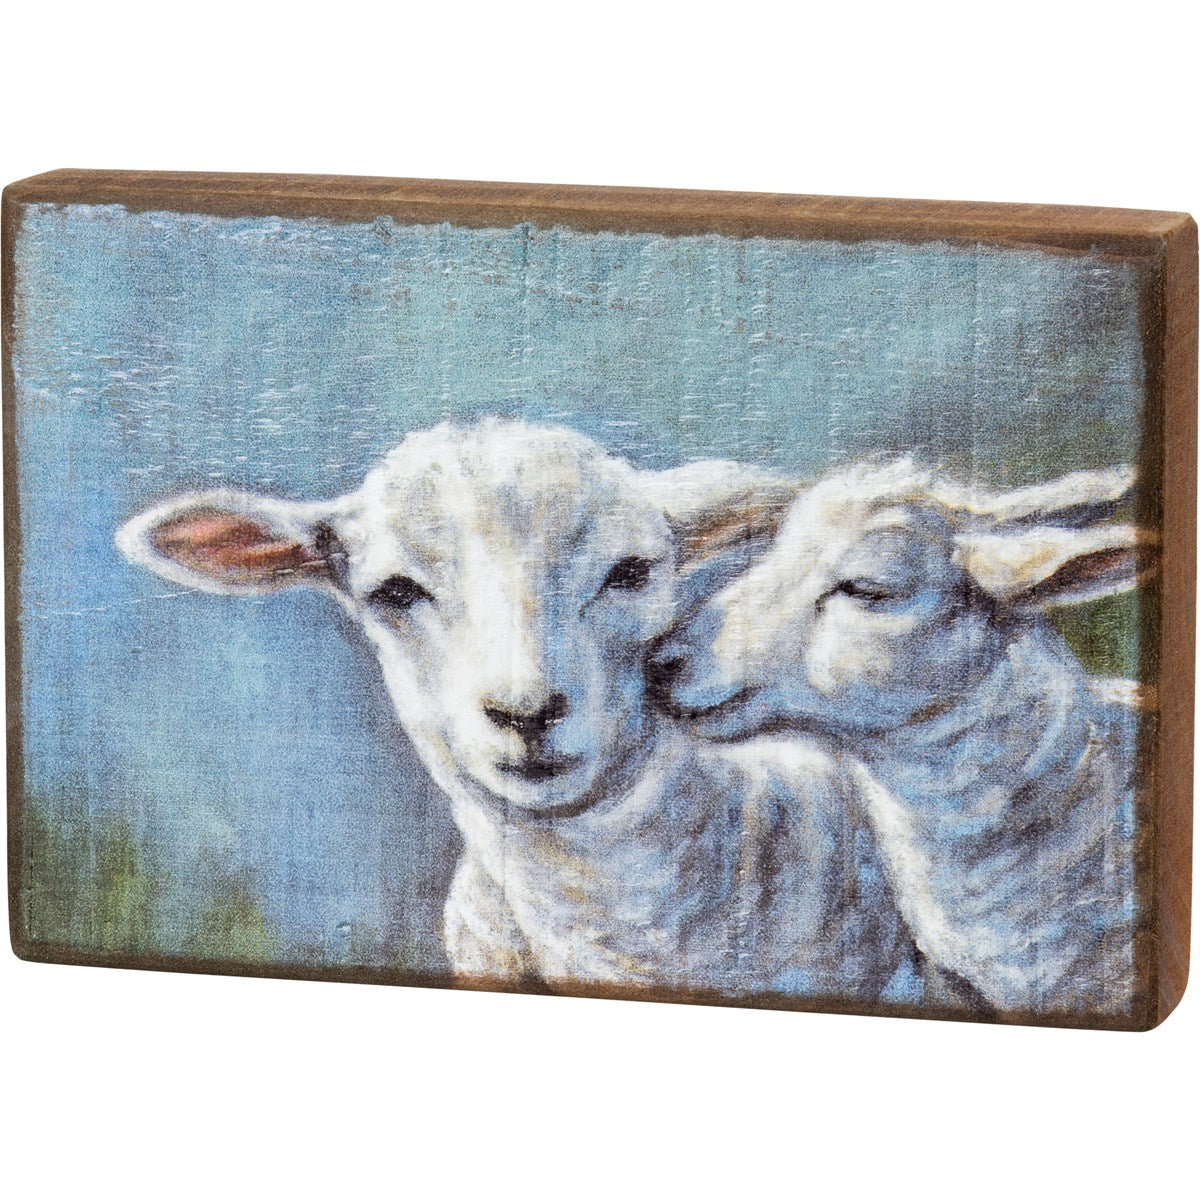 Sheep and Lamb Wood Block Picture